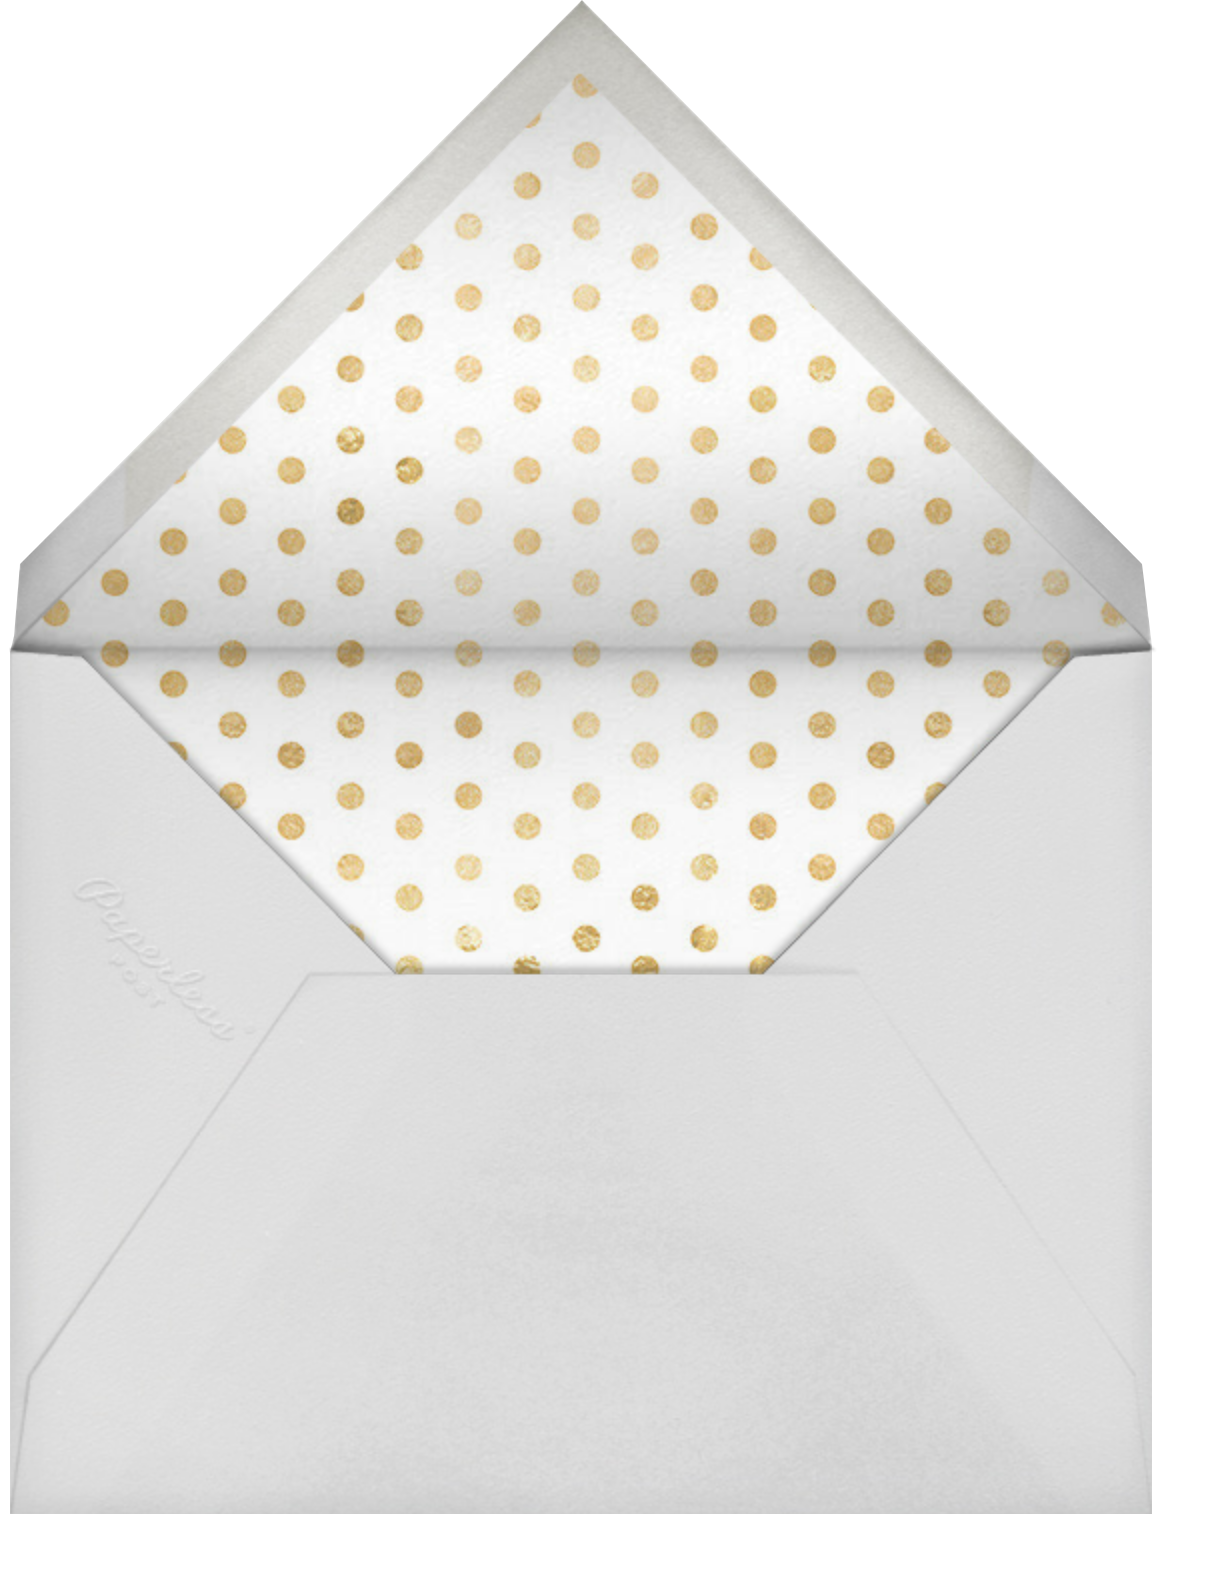 Buttercup Garland - Rifle Paper Co. - Kids' birthday - envelope back